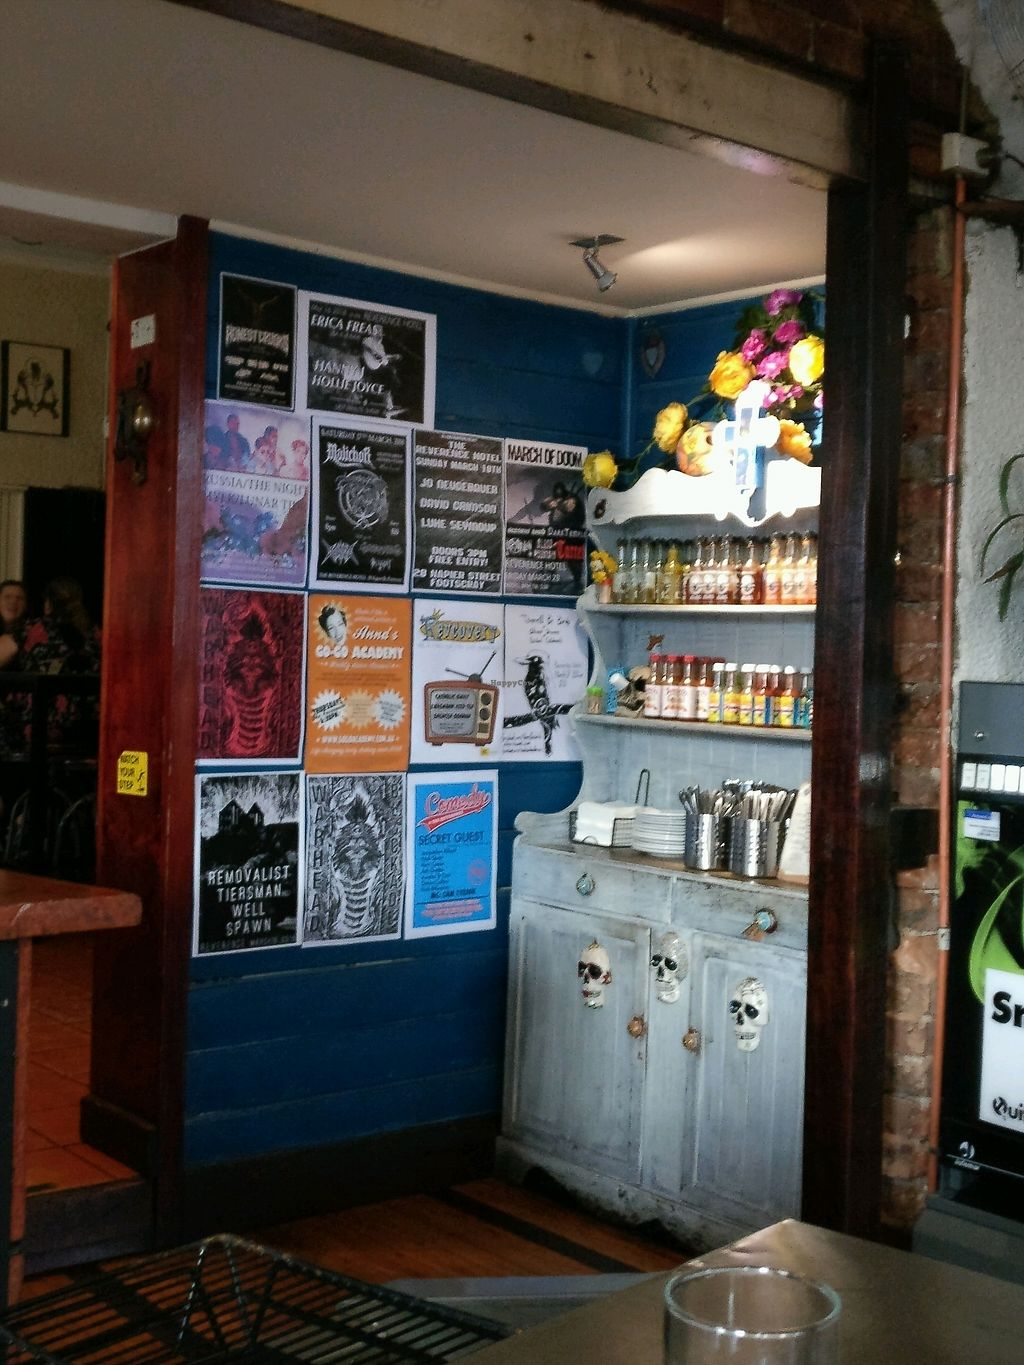 """Photo of The Reverence Hotel  by <a href=""""/members/profile/Aloo"""">Aloo</a> <br/>hot sauce anyone?  <br/> March 15, 2018  - <a href='/contact/abuse/image/39973/370929'>Report</a>"""